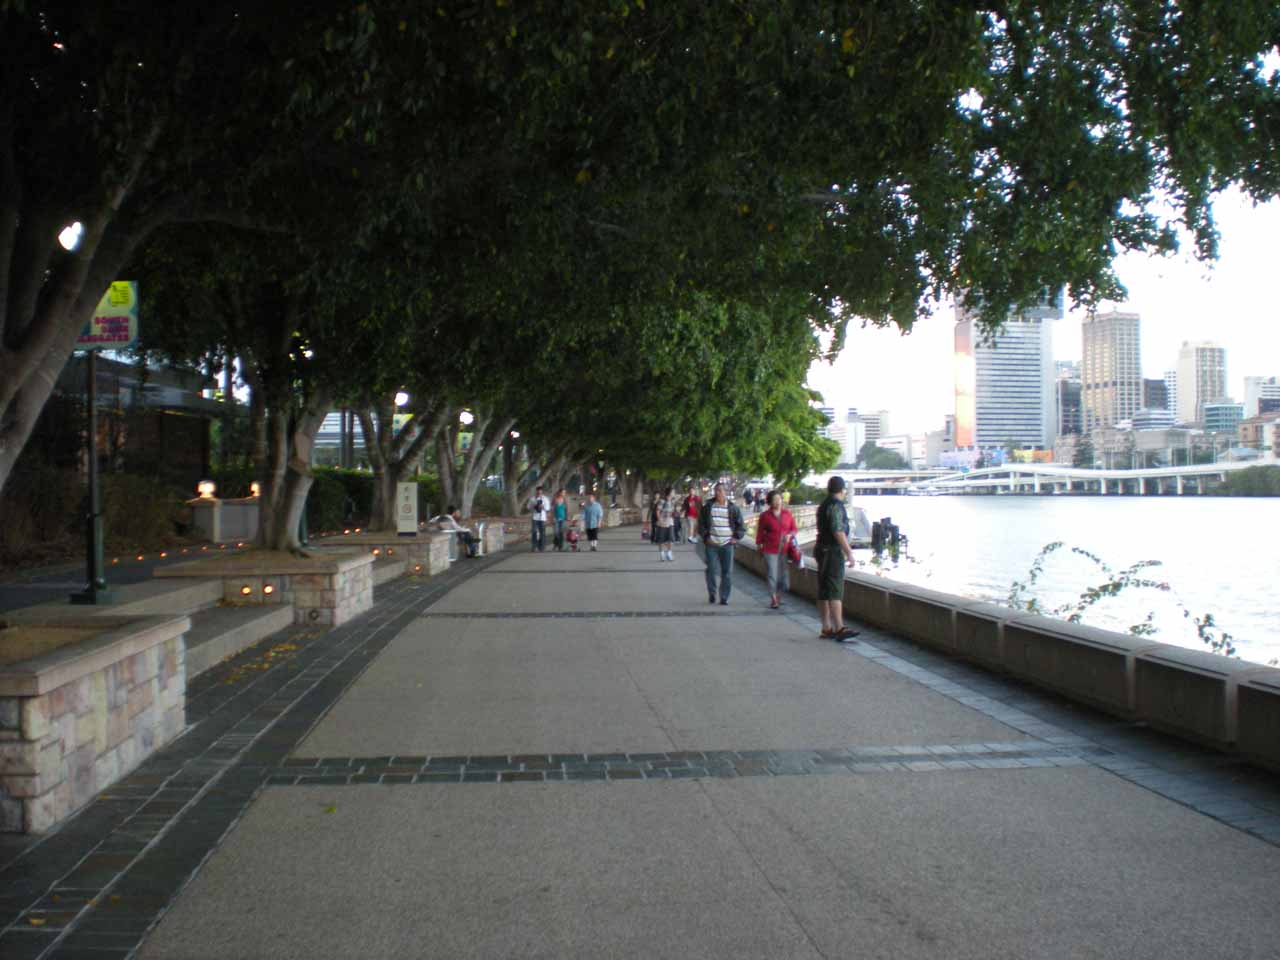 Walking on the promenade alongside the Brisbane River